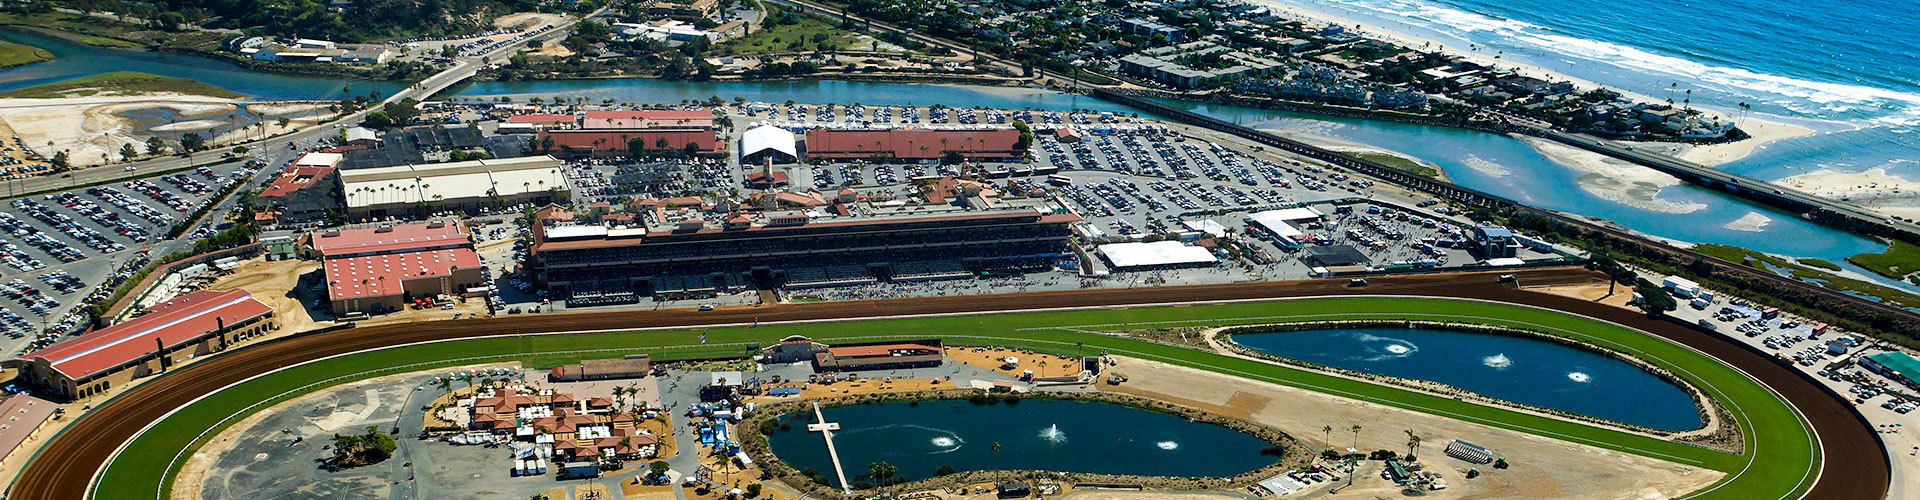 Del Mar Directions And Transportation - Horse Race Tracks In California Map